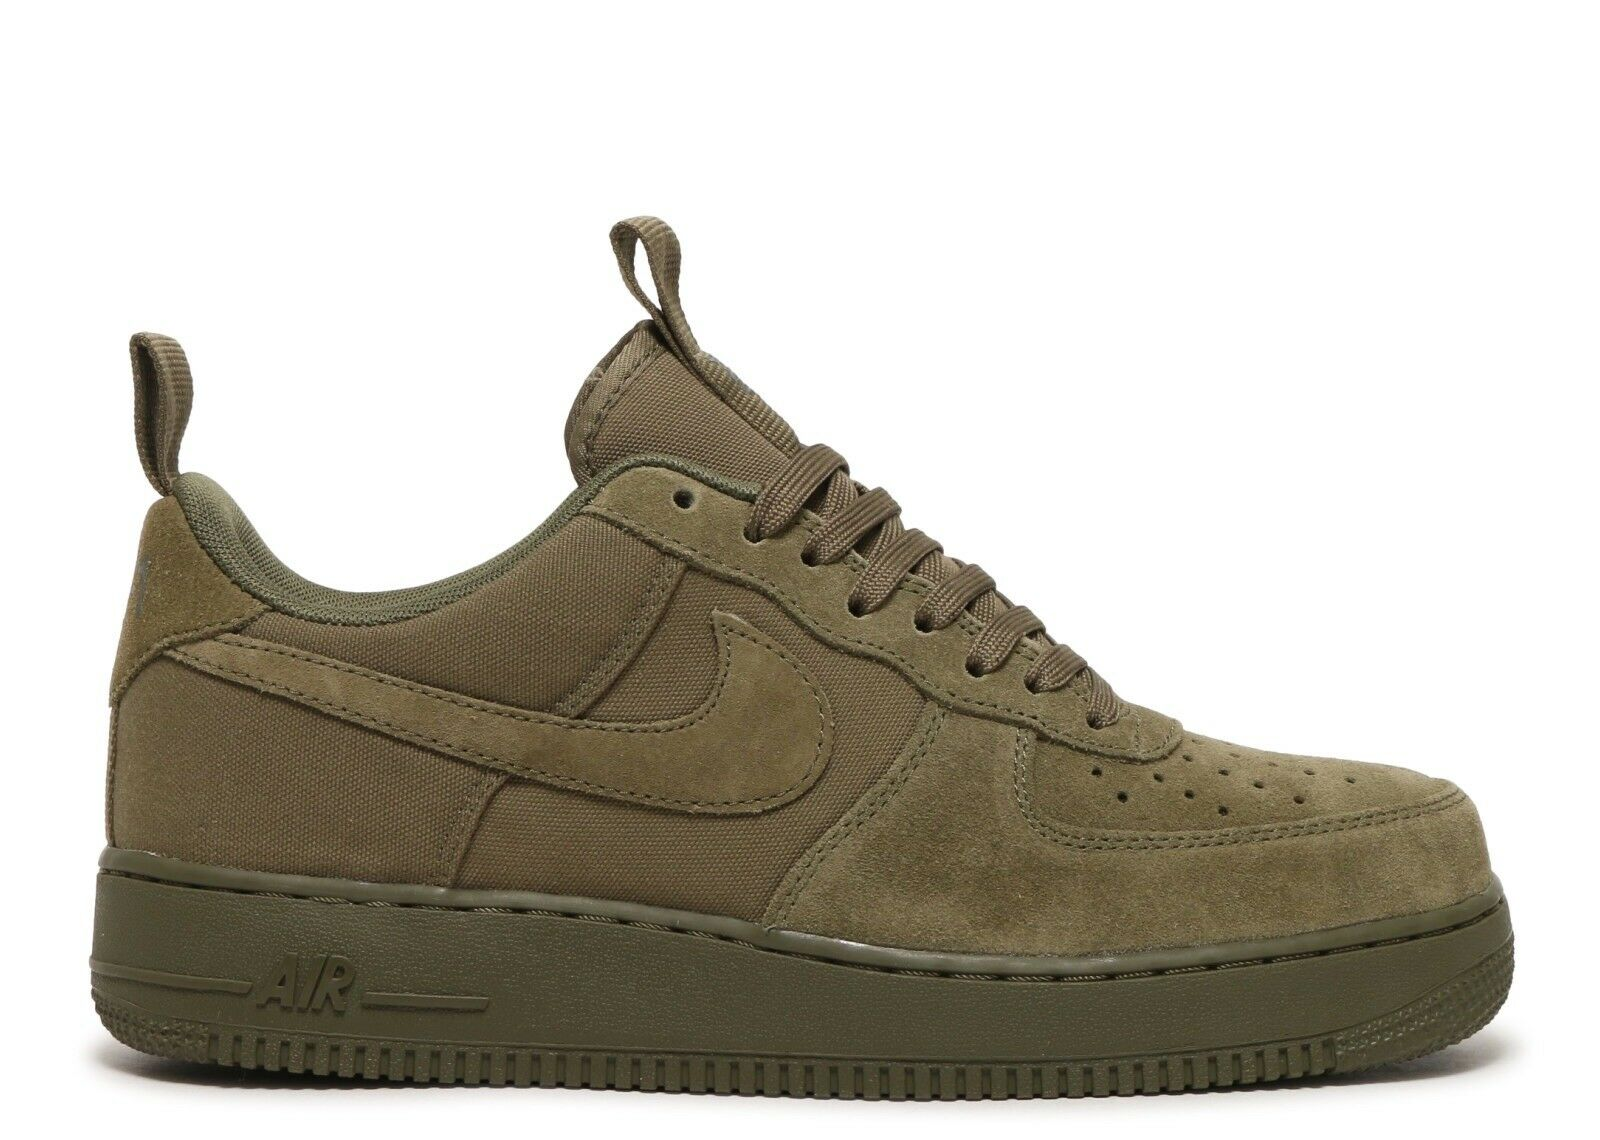 Nike Air Force 1 Canvas Mens 579927-200 Medium Olive Sequoia shoes Size 12.5